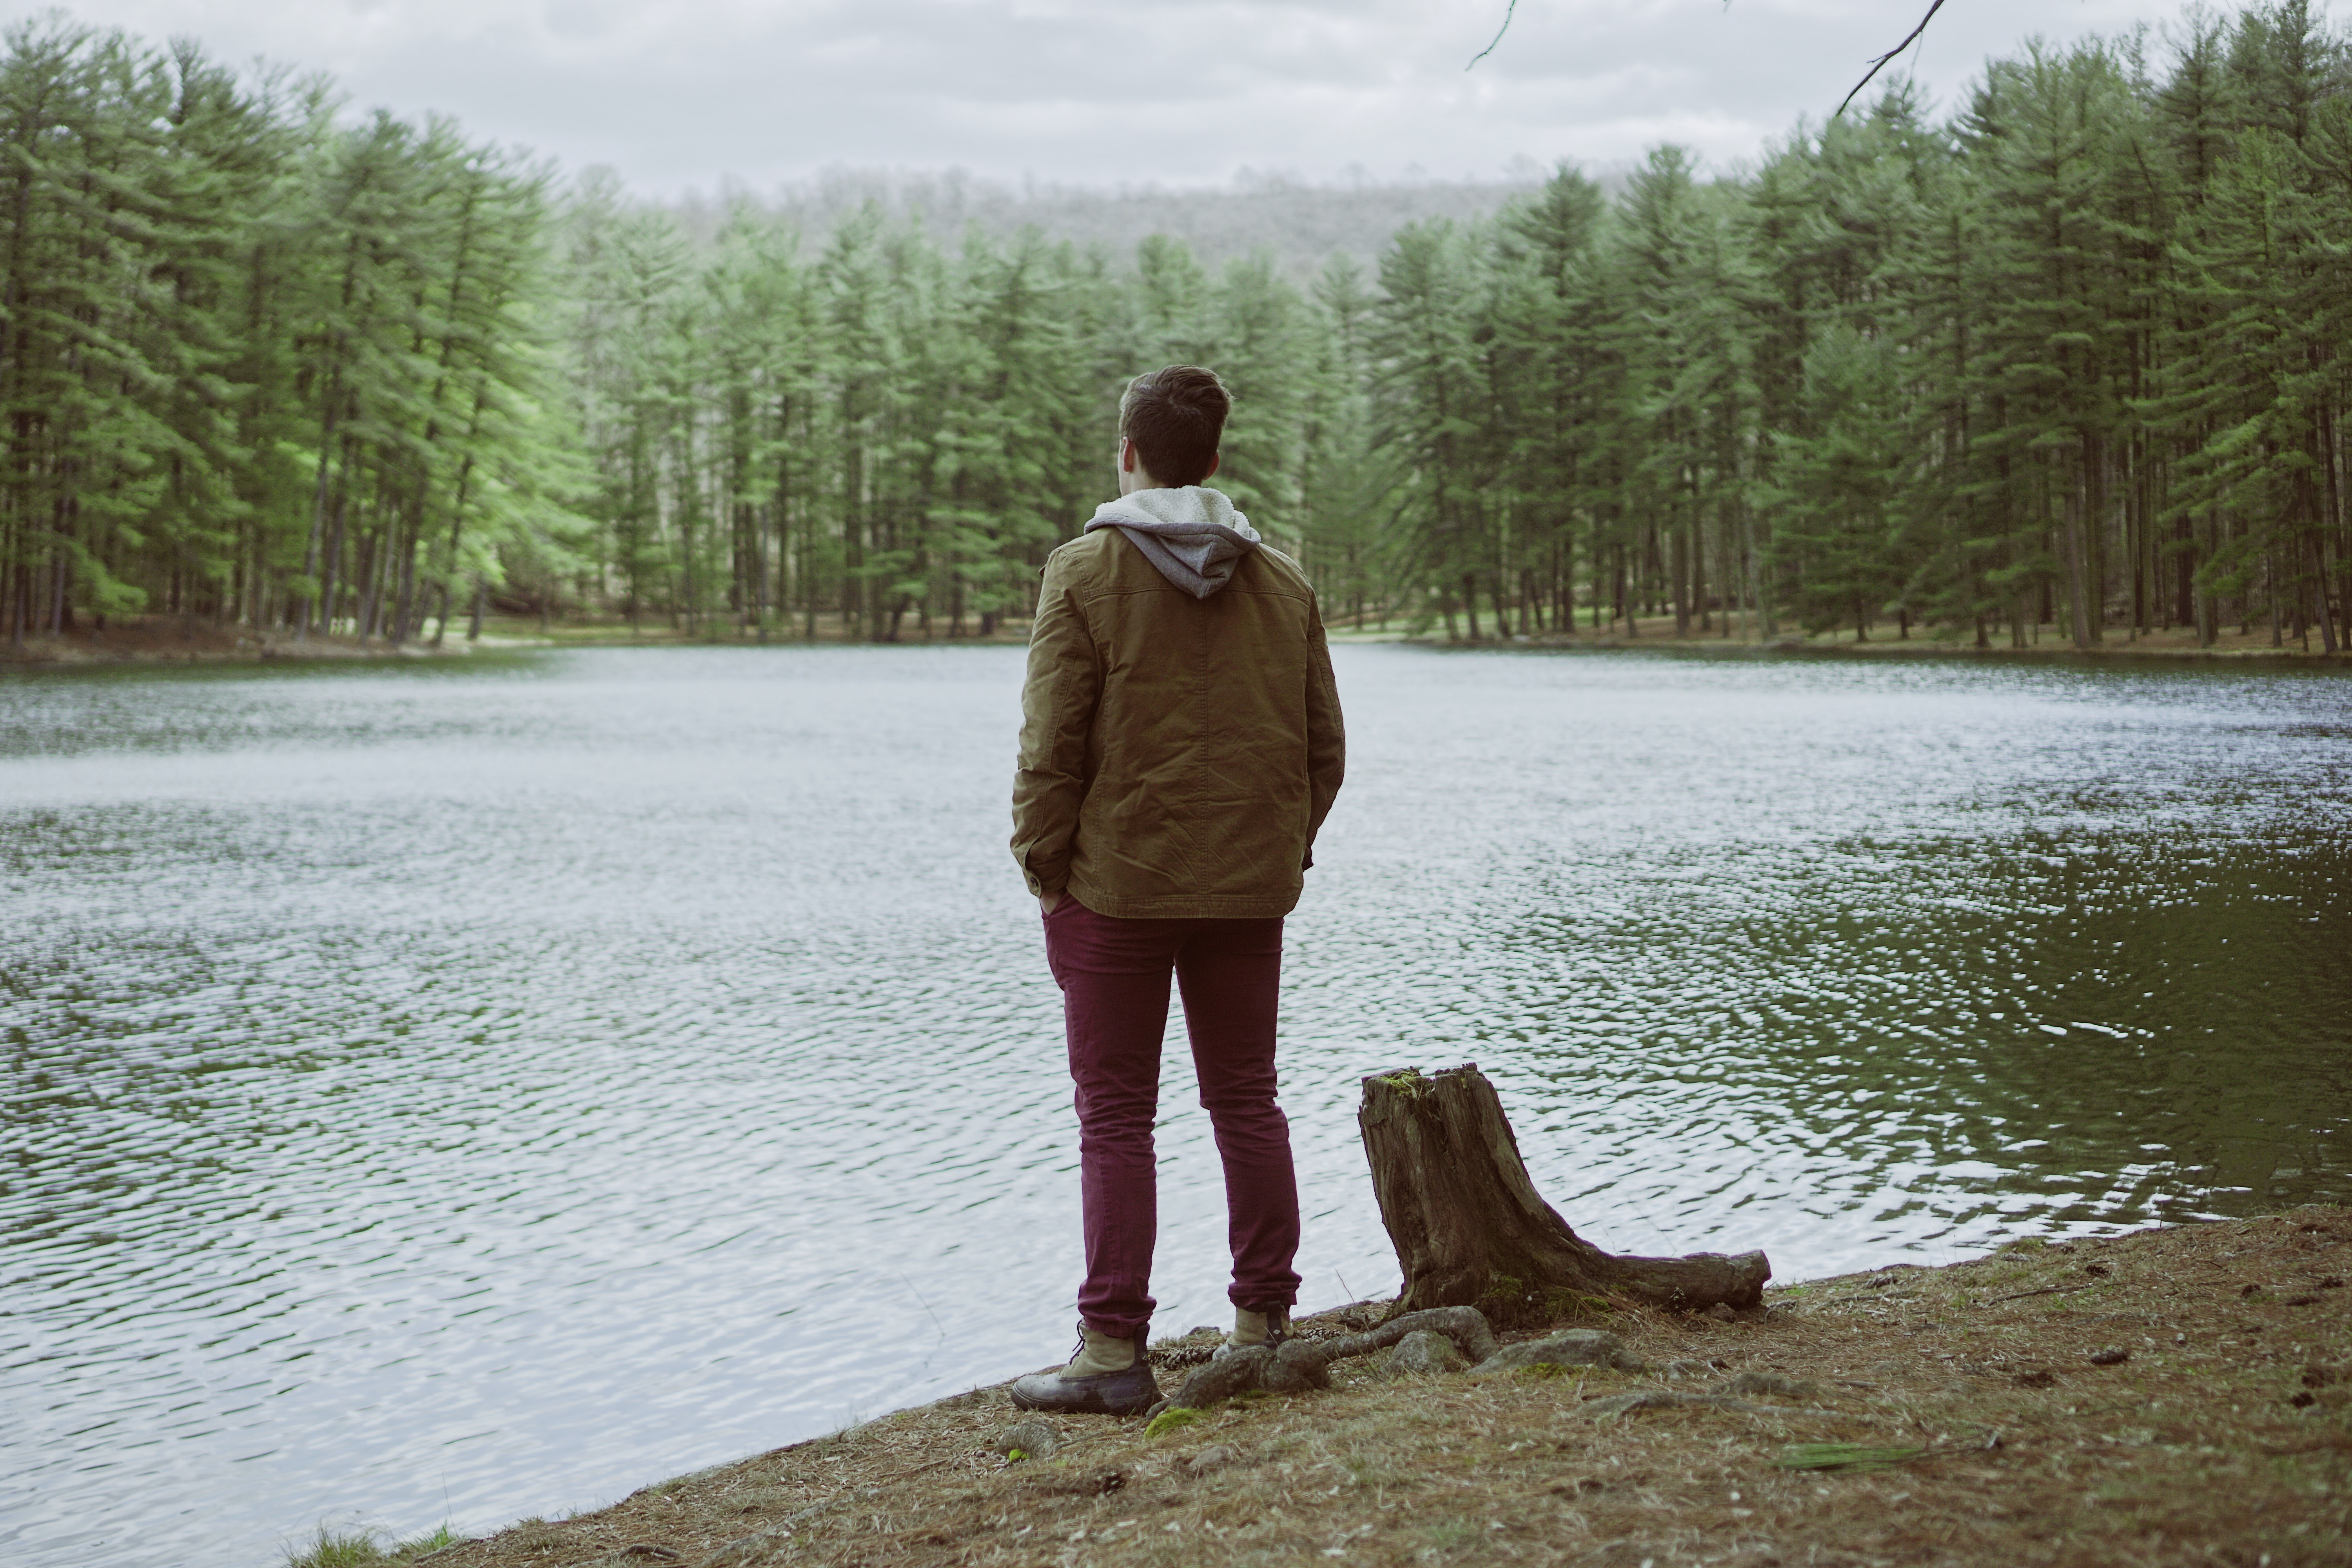 man standing near body of water